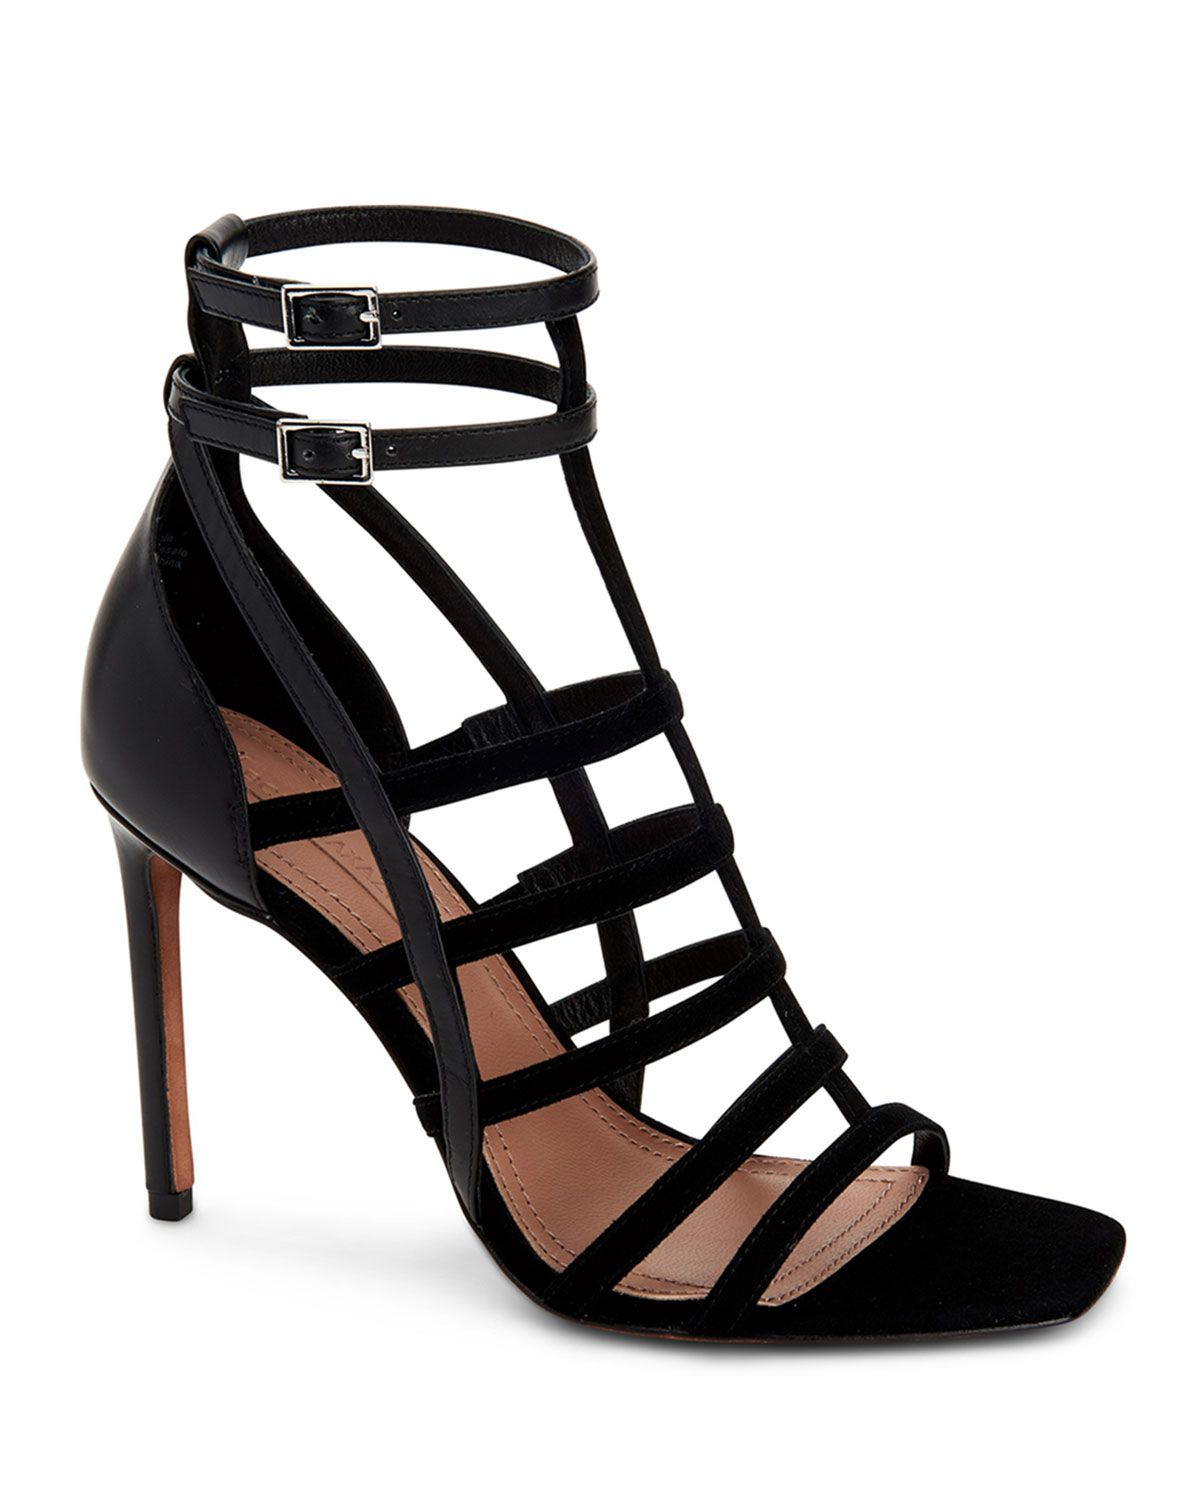 Bcbgmaxazria Ilsa Caged Dress Sandals Women S Shoes In Black Patent Modesens Strappy Leather Sandals Women Shoes Caged Sandals